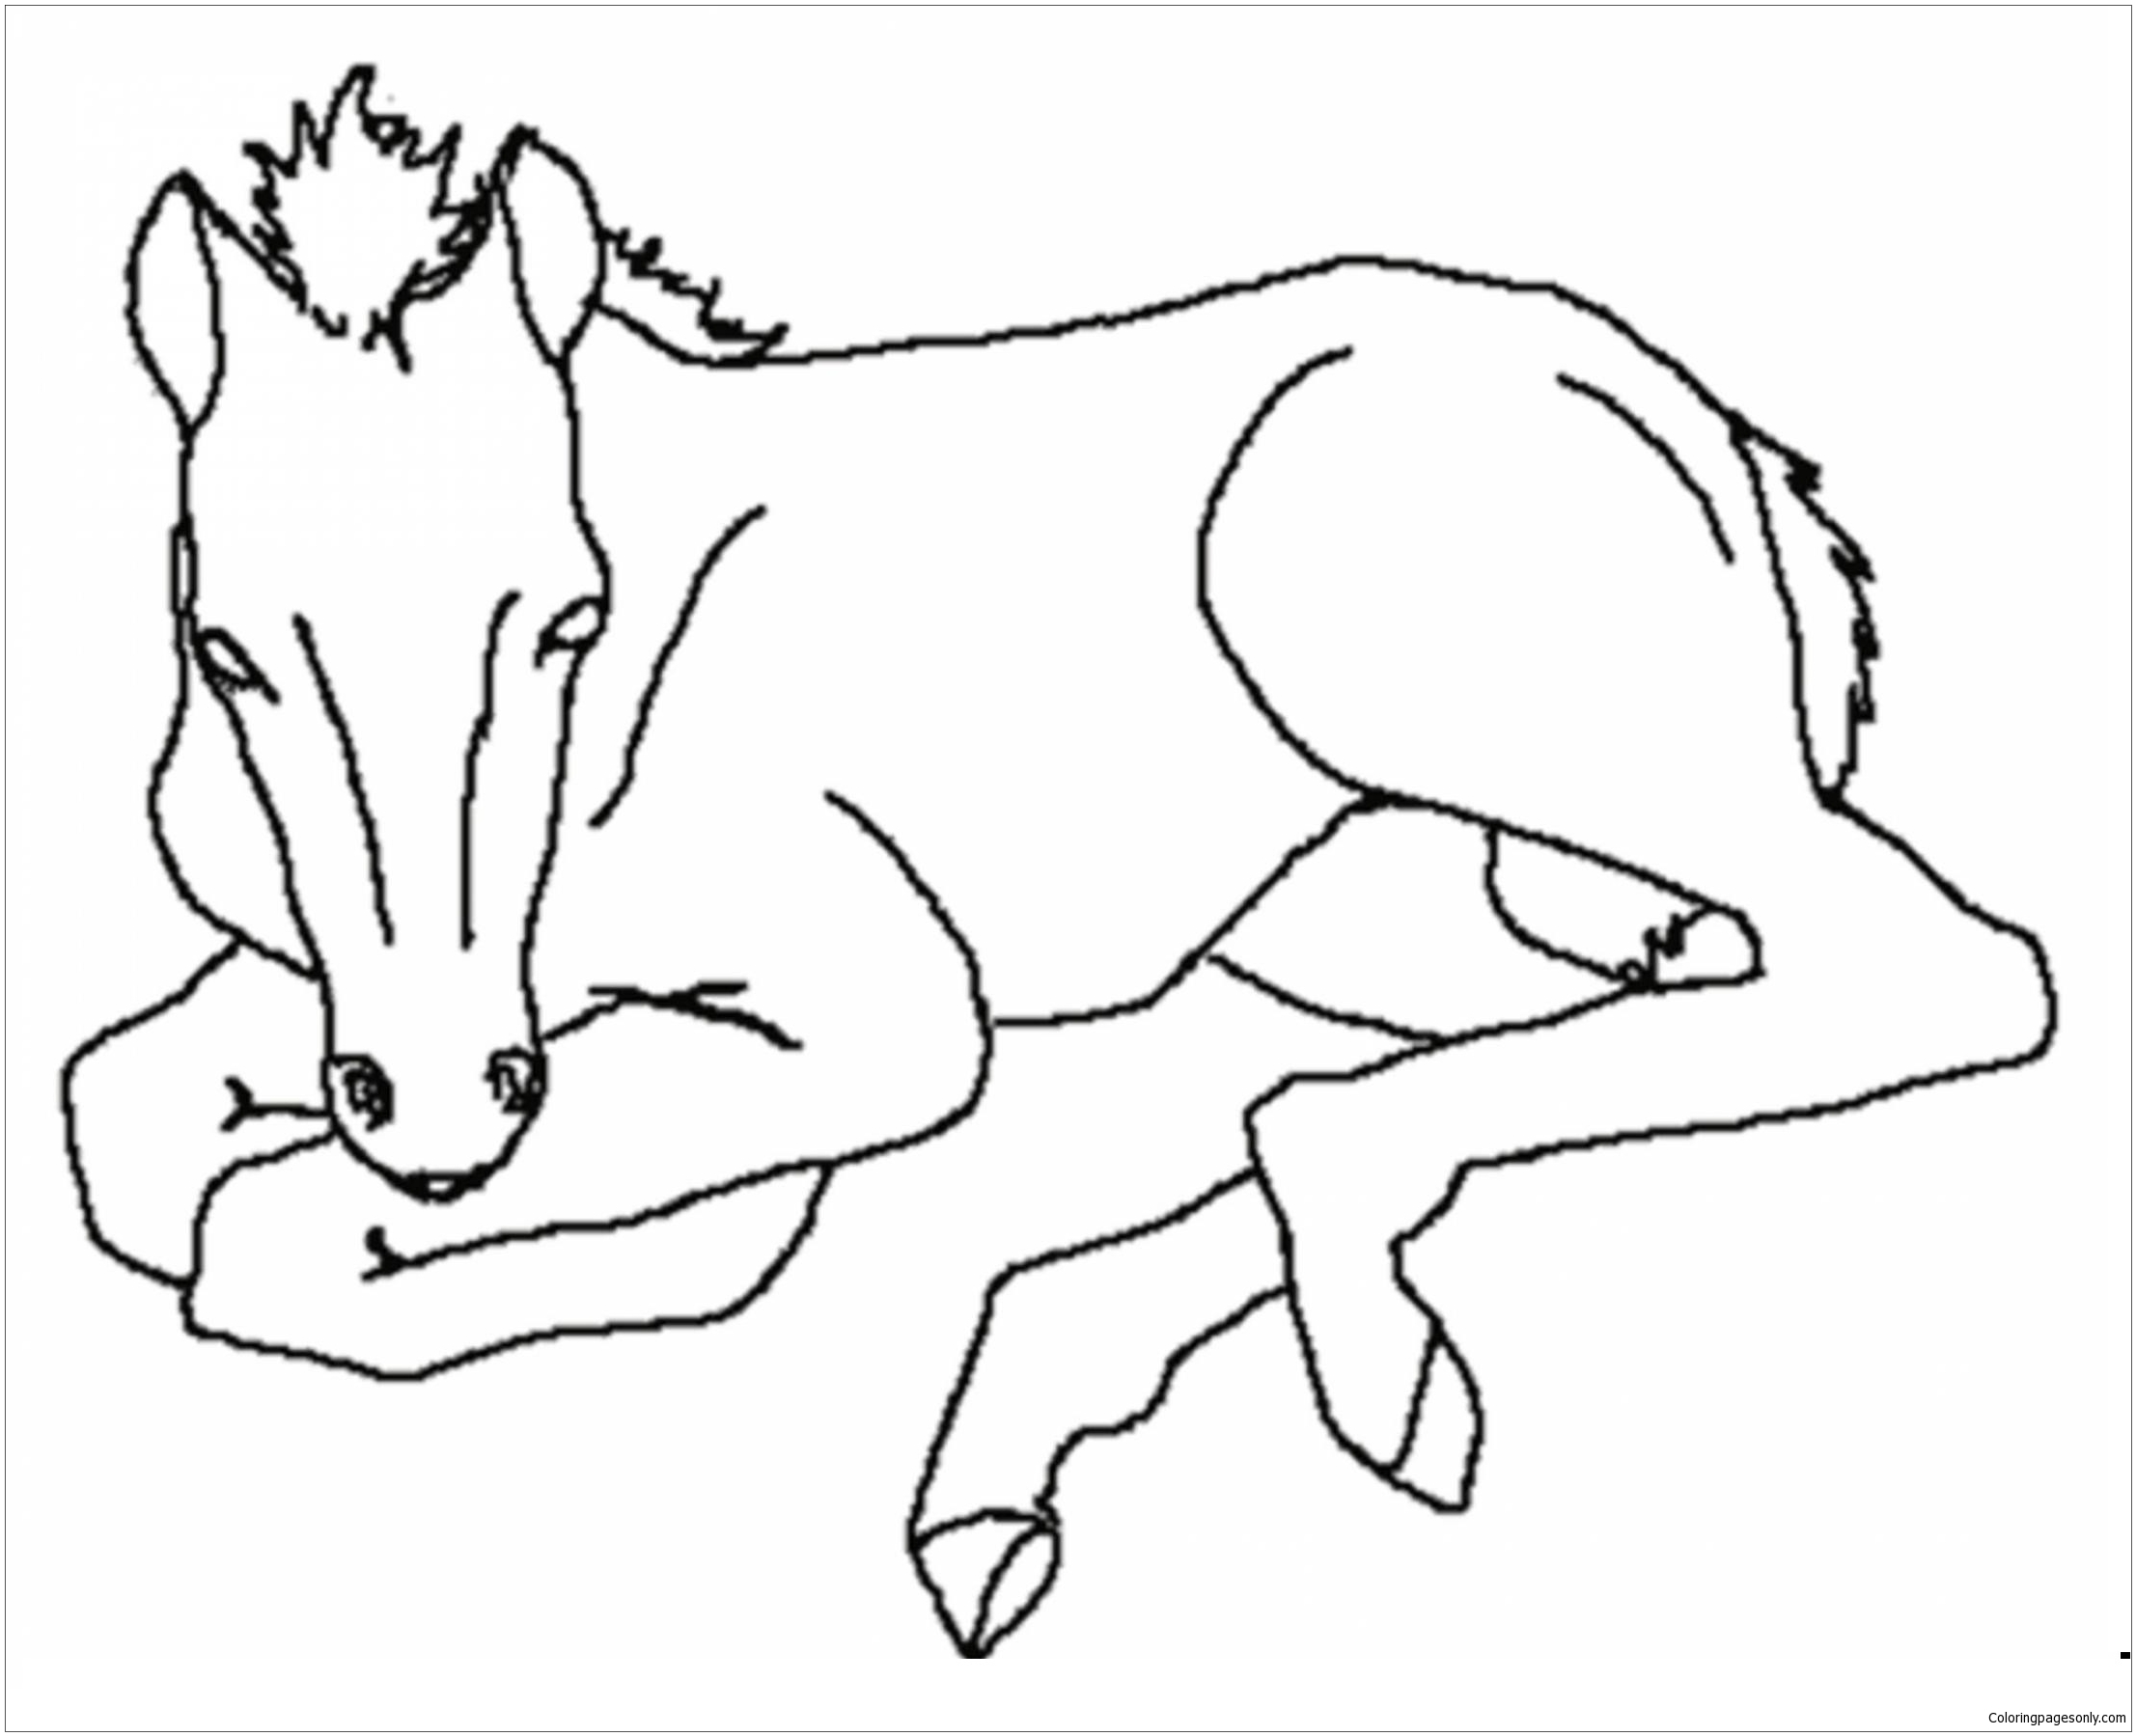 coloring pages of baby horses baby horse coloring pages coloring pages for kids horses pages of baby coloring